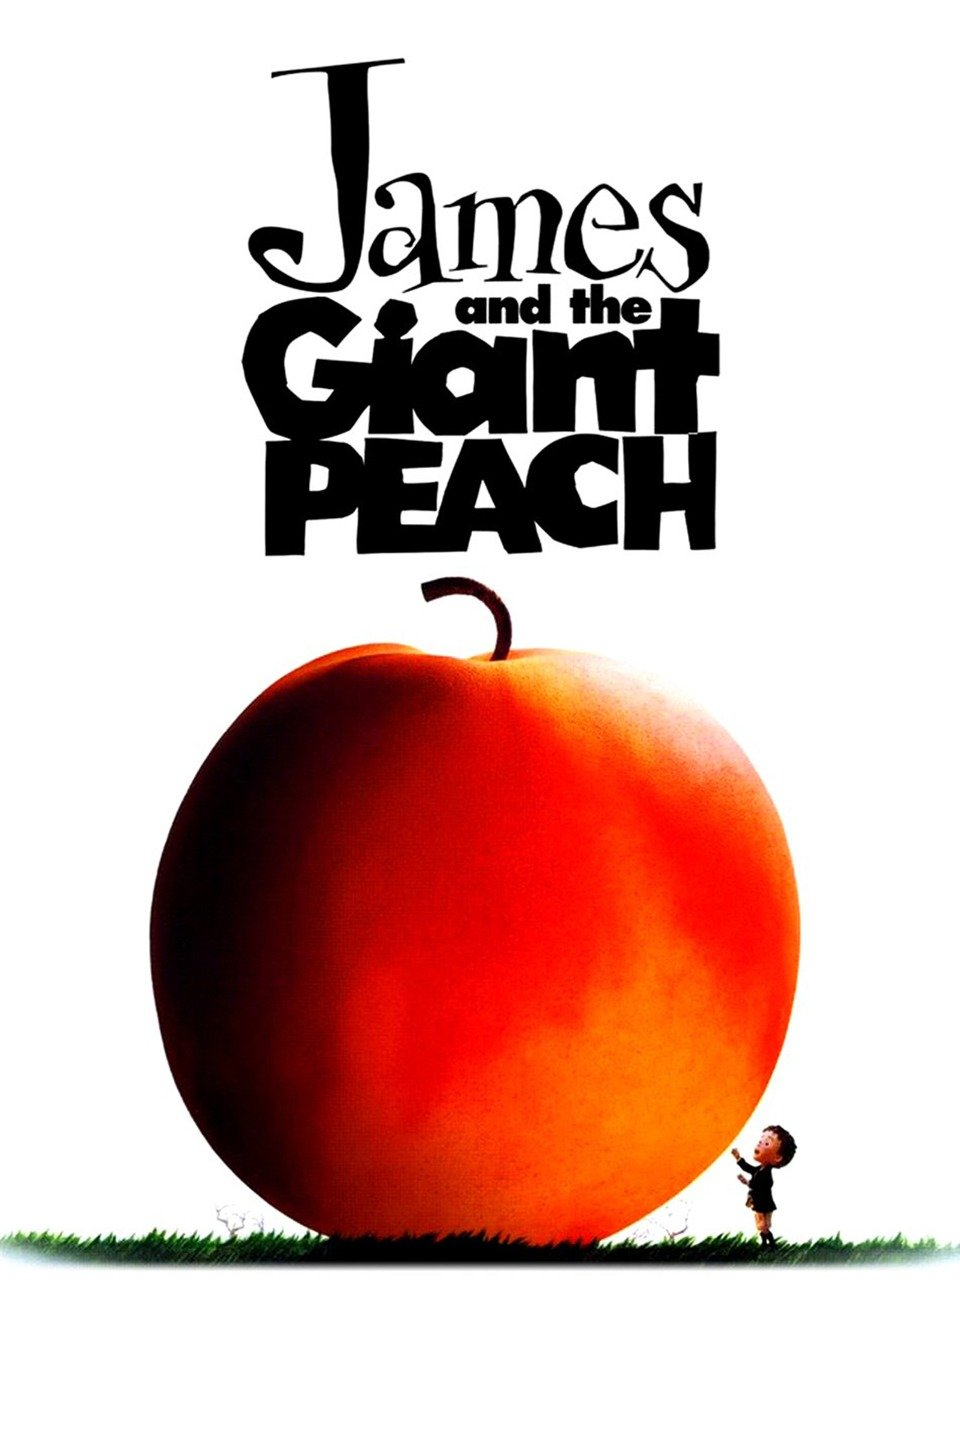 James and the Giant Peach-James and the Giant Peach